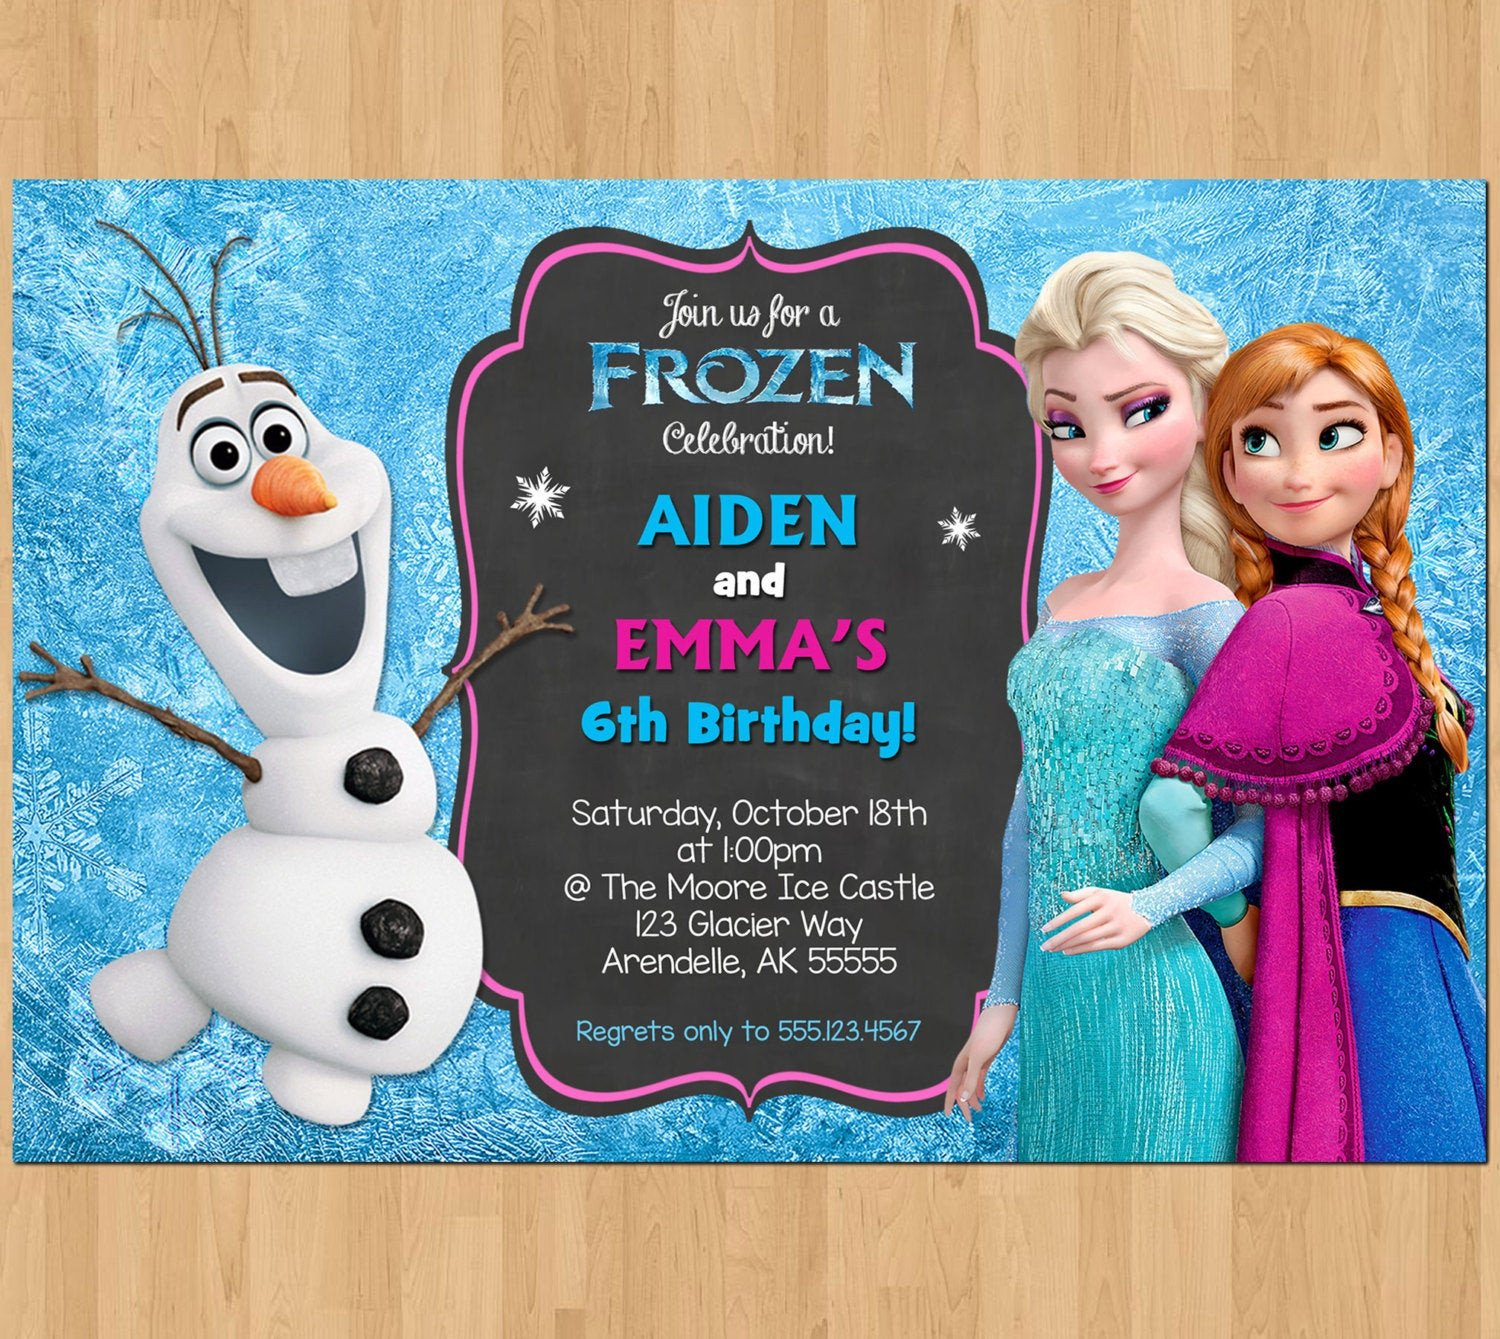 Frozen Bday Party Invitations Sibling Birthday Invitation Frozen Invitation Olaf Elsa Anna